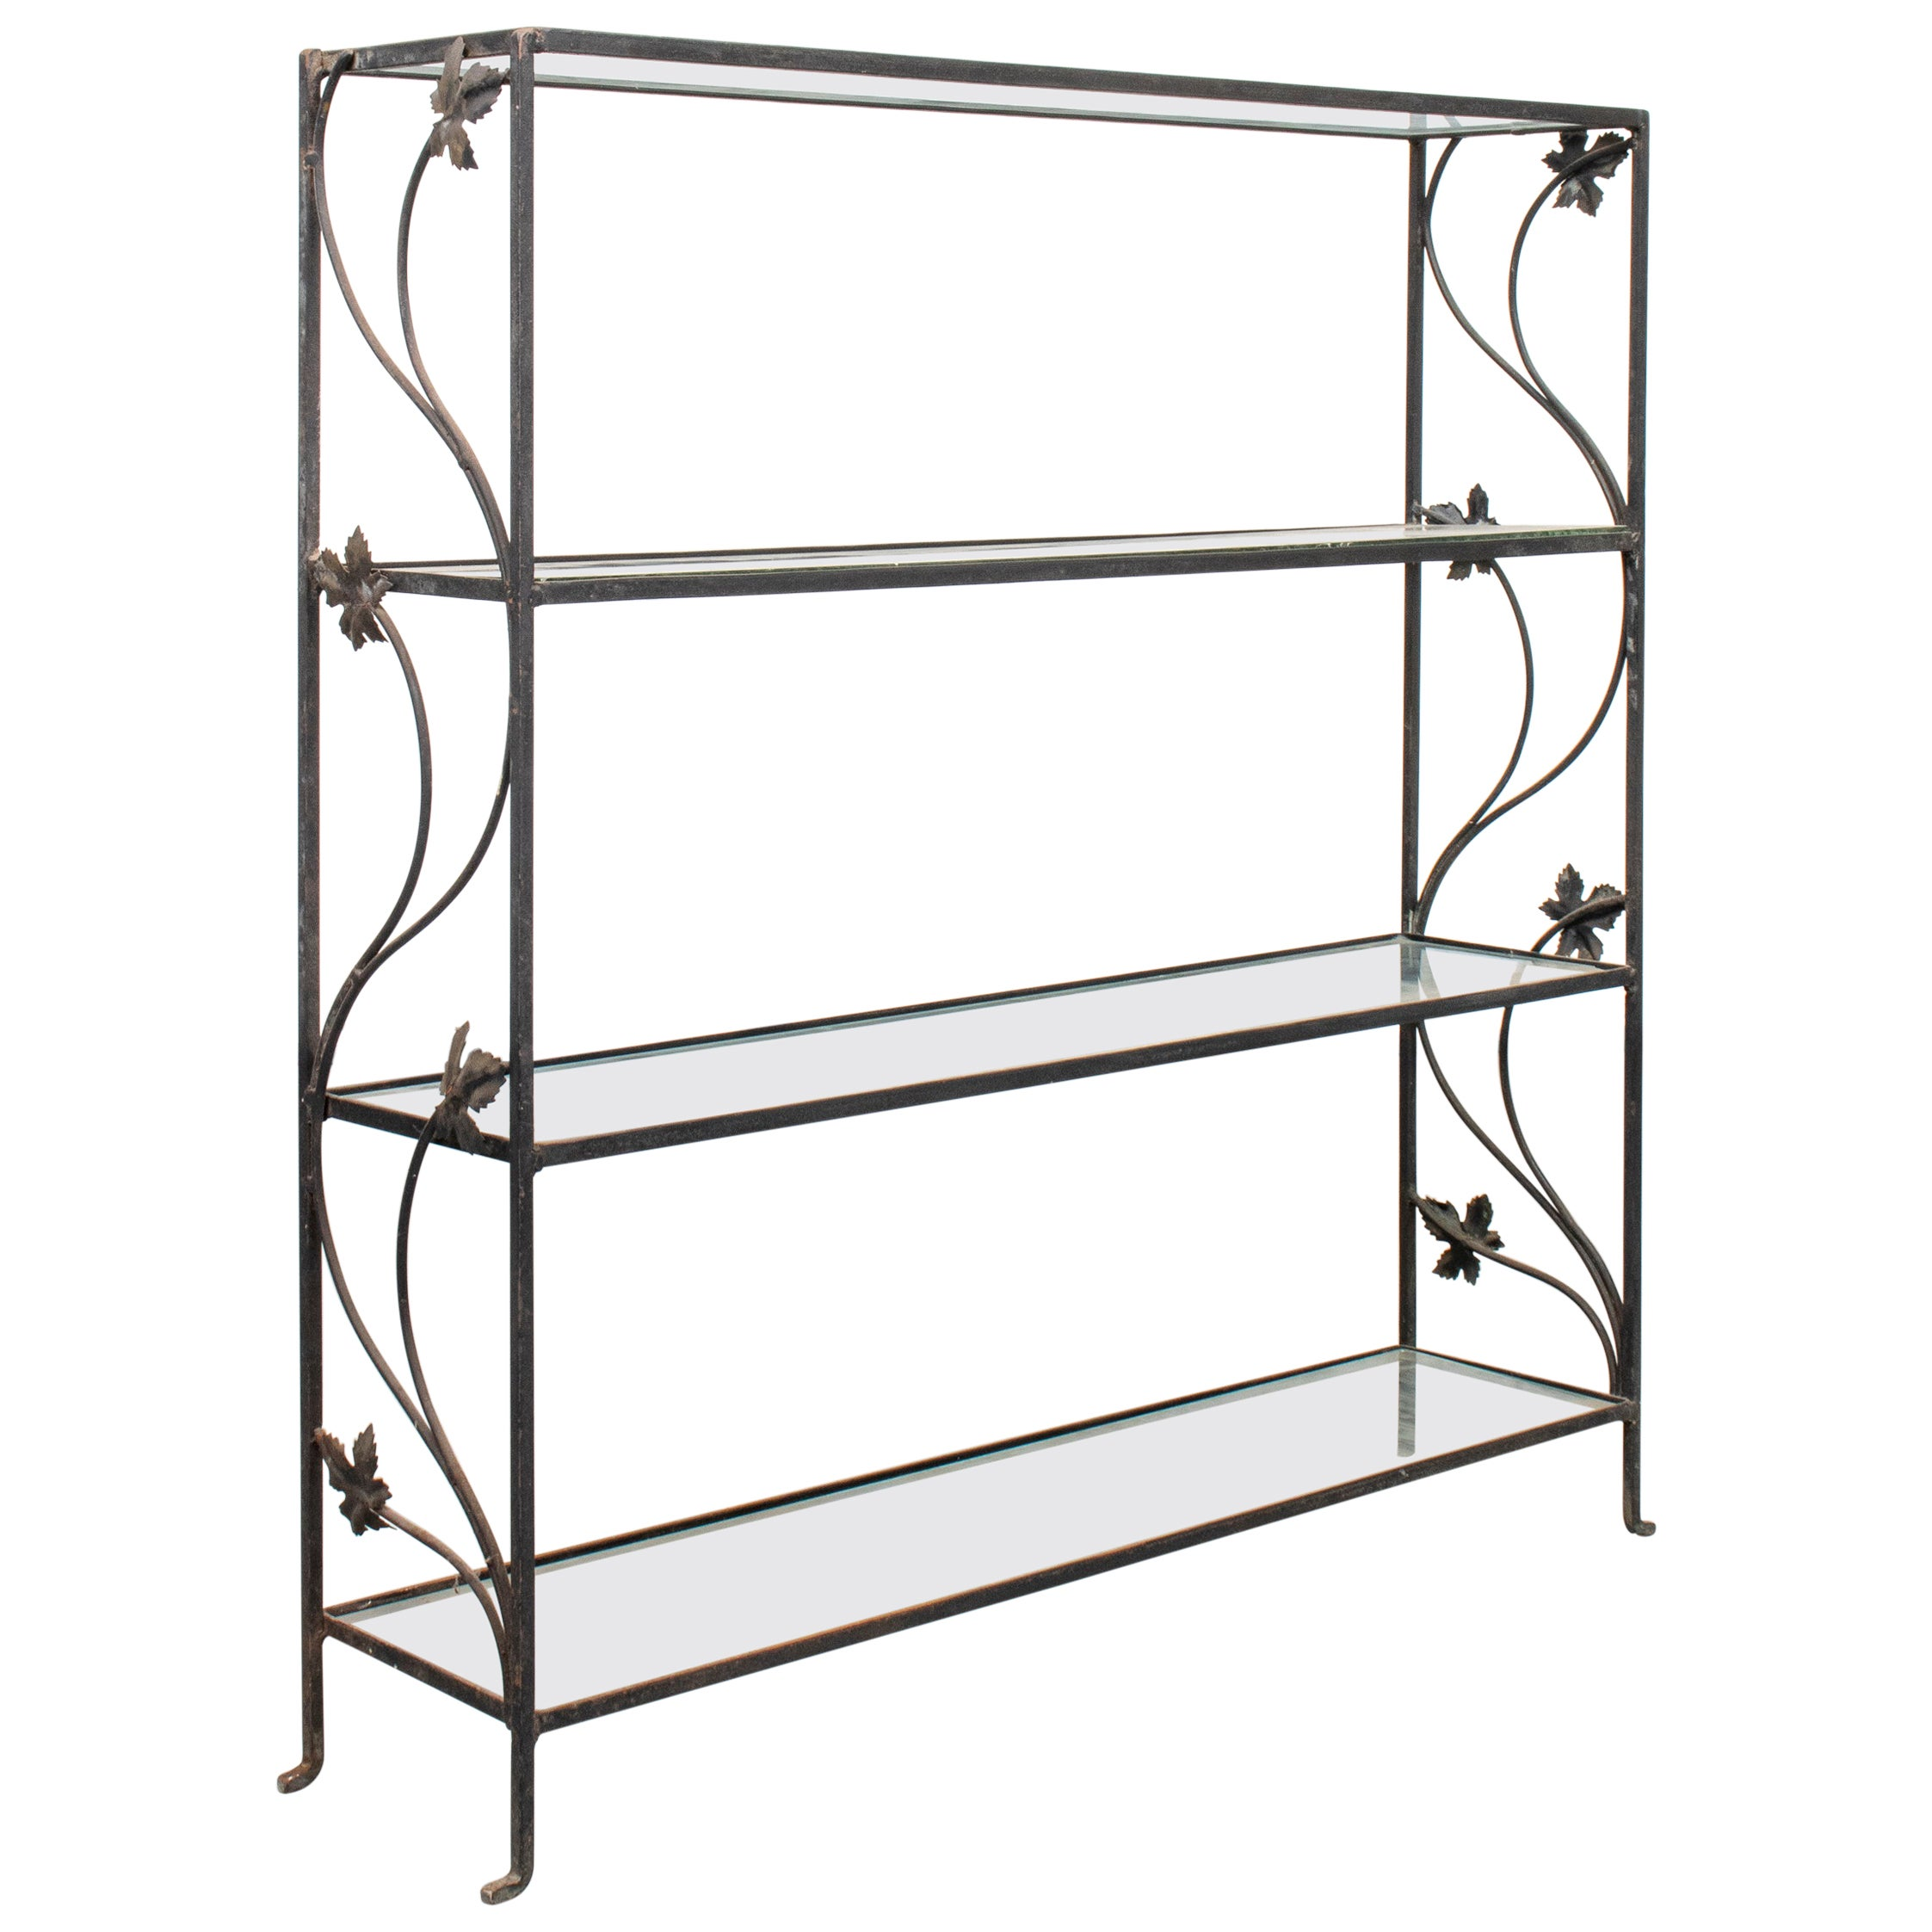 Modern Wrought Iron Four Tier Etagere with Glass Shelves